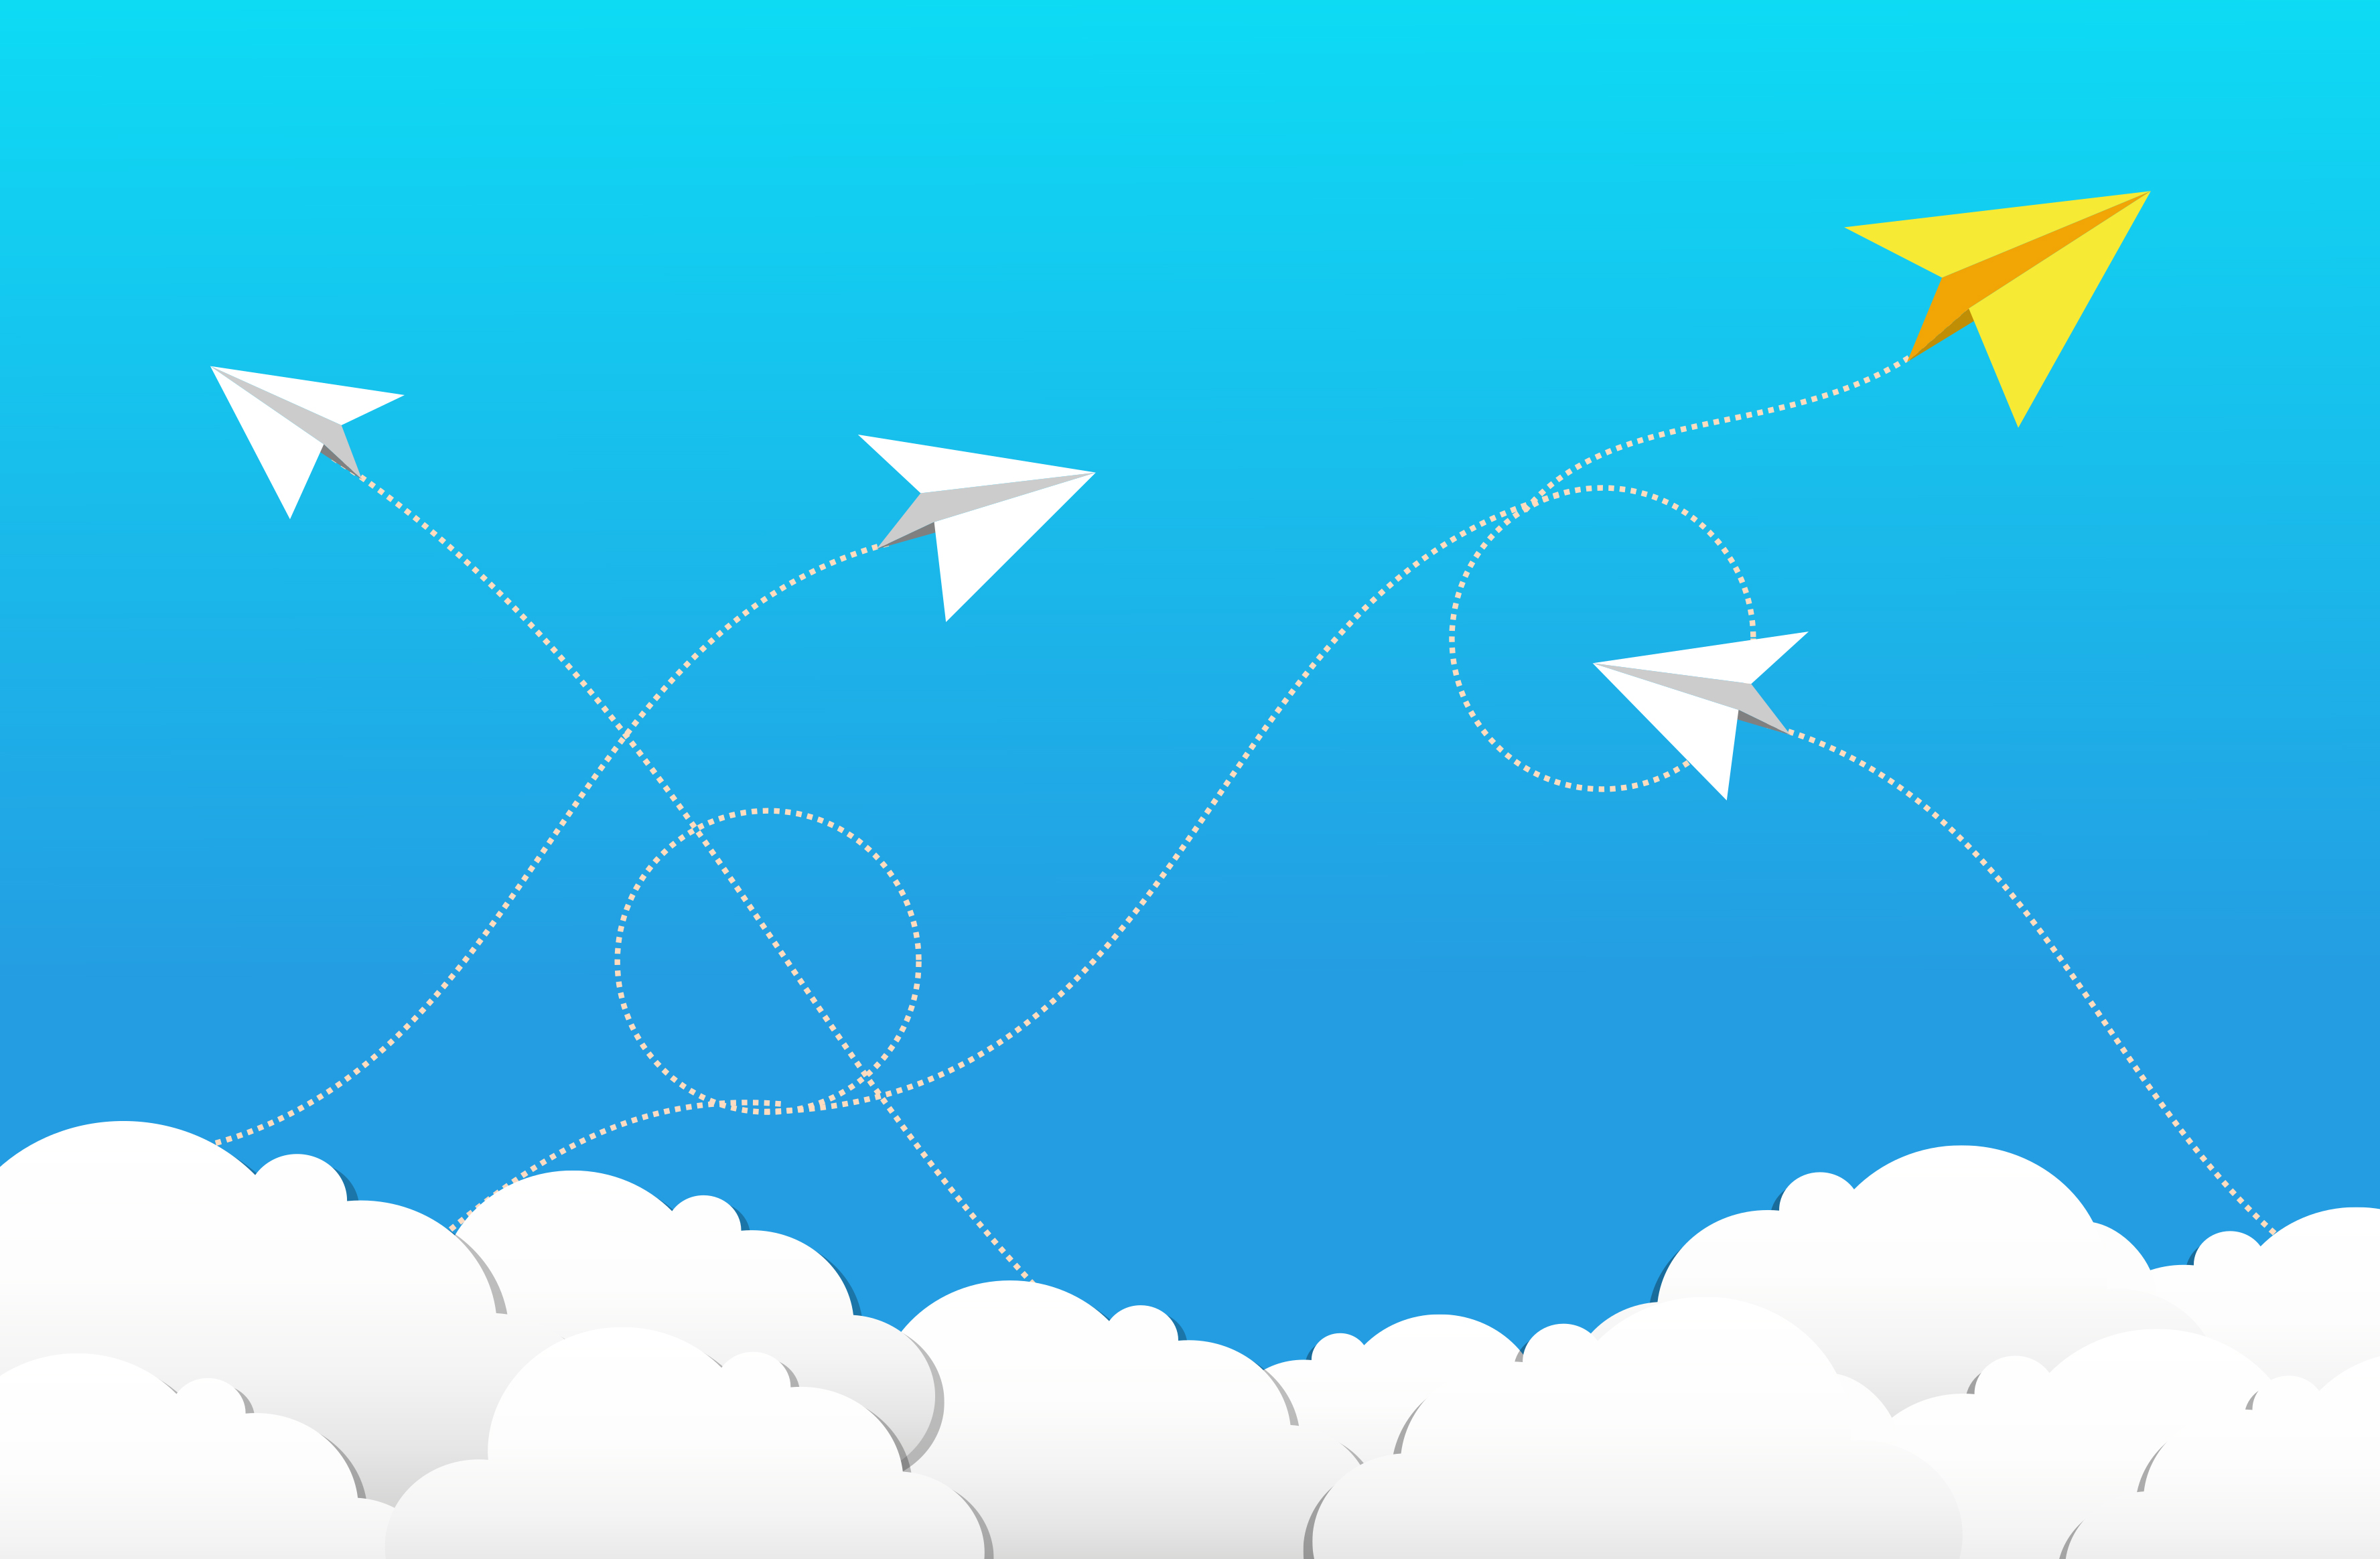 Flying Paper Planes and Clouds - Cloud Computing Concept, Abstract, Path, Rocks, Ribbon, HQ Photo